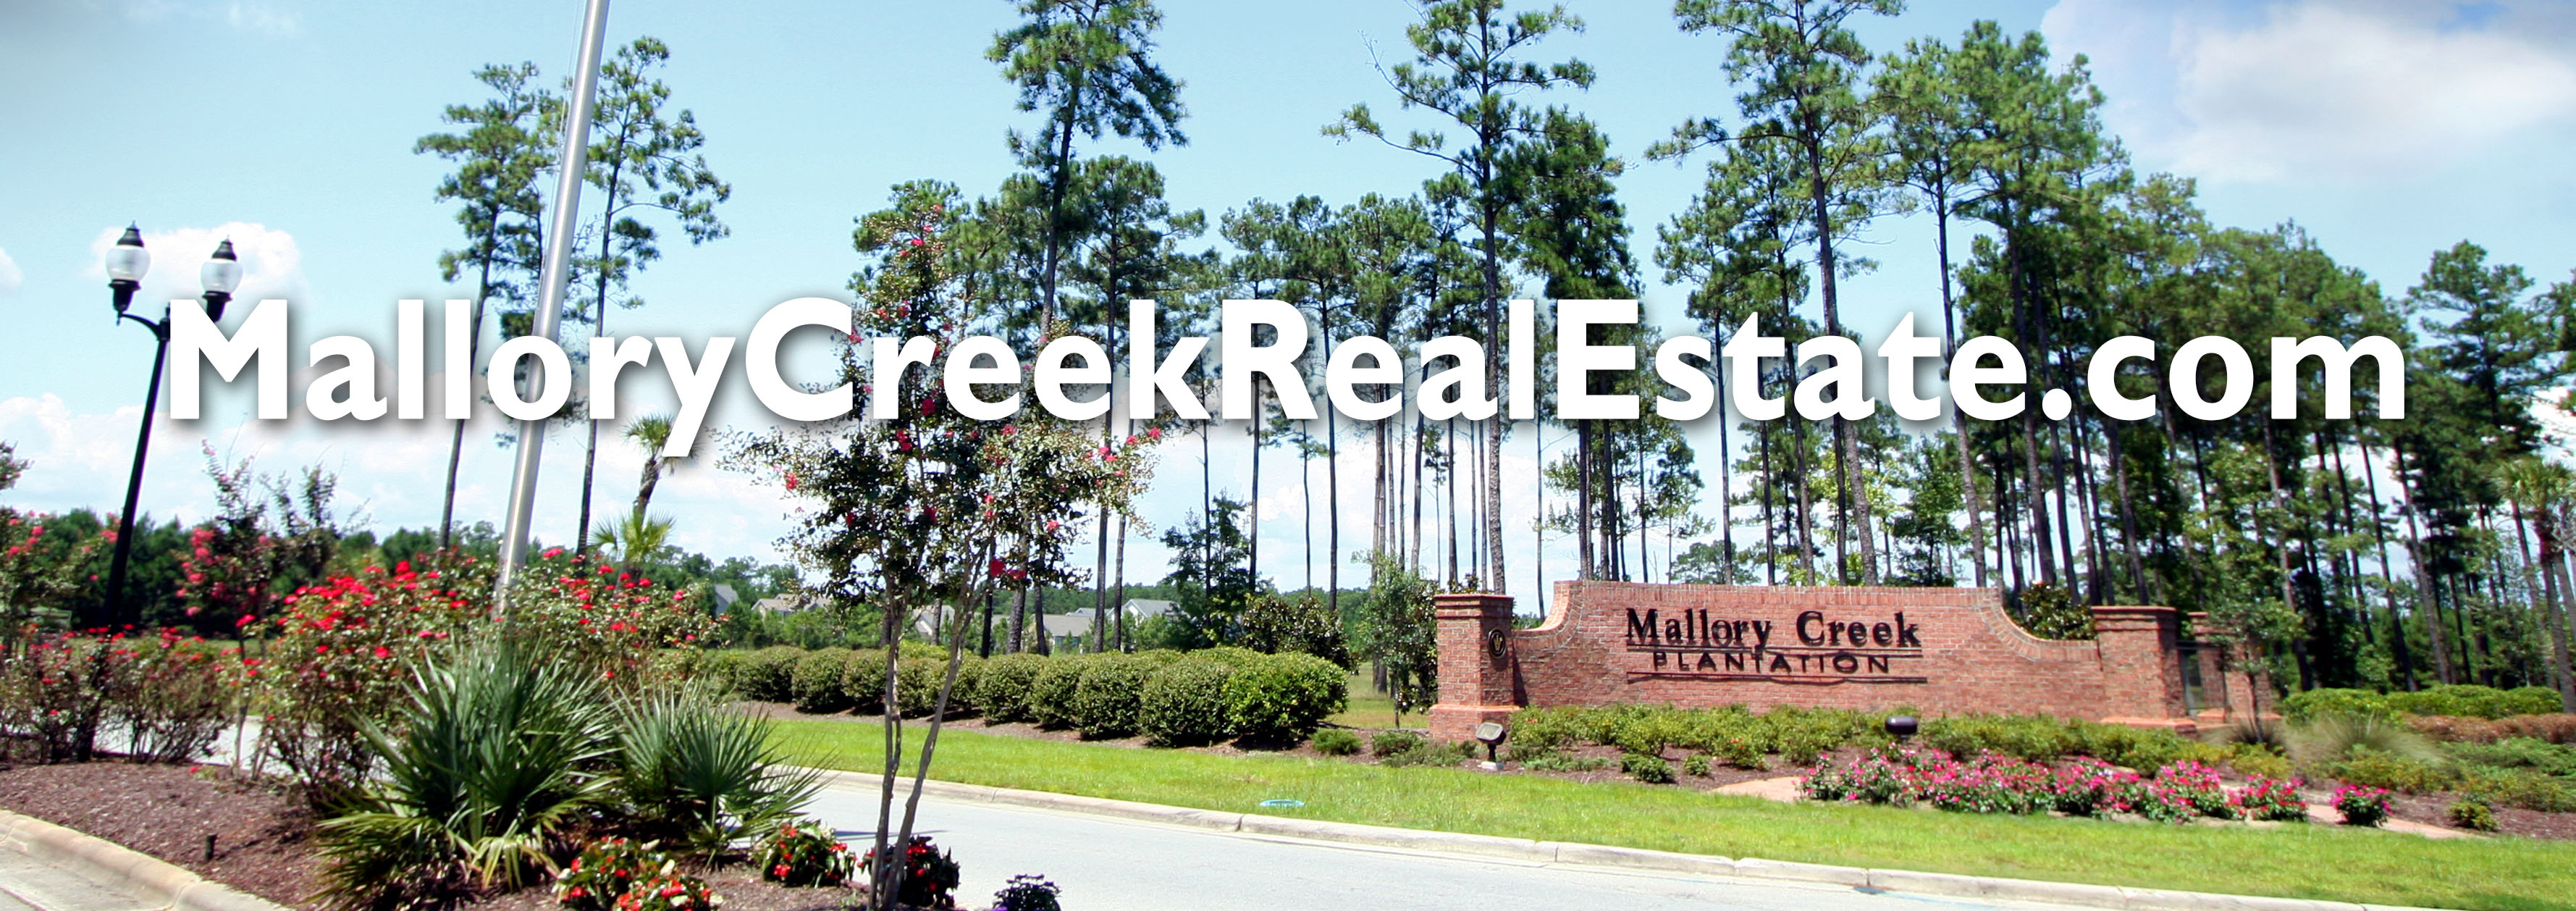 Mallory Creek Real Estate